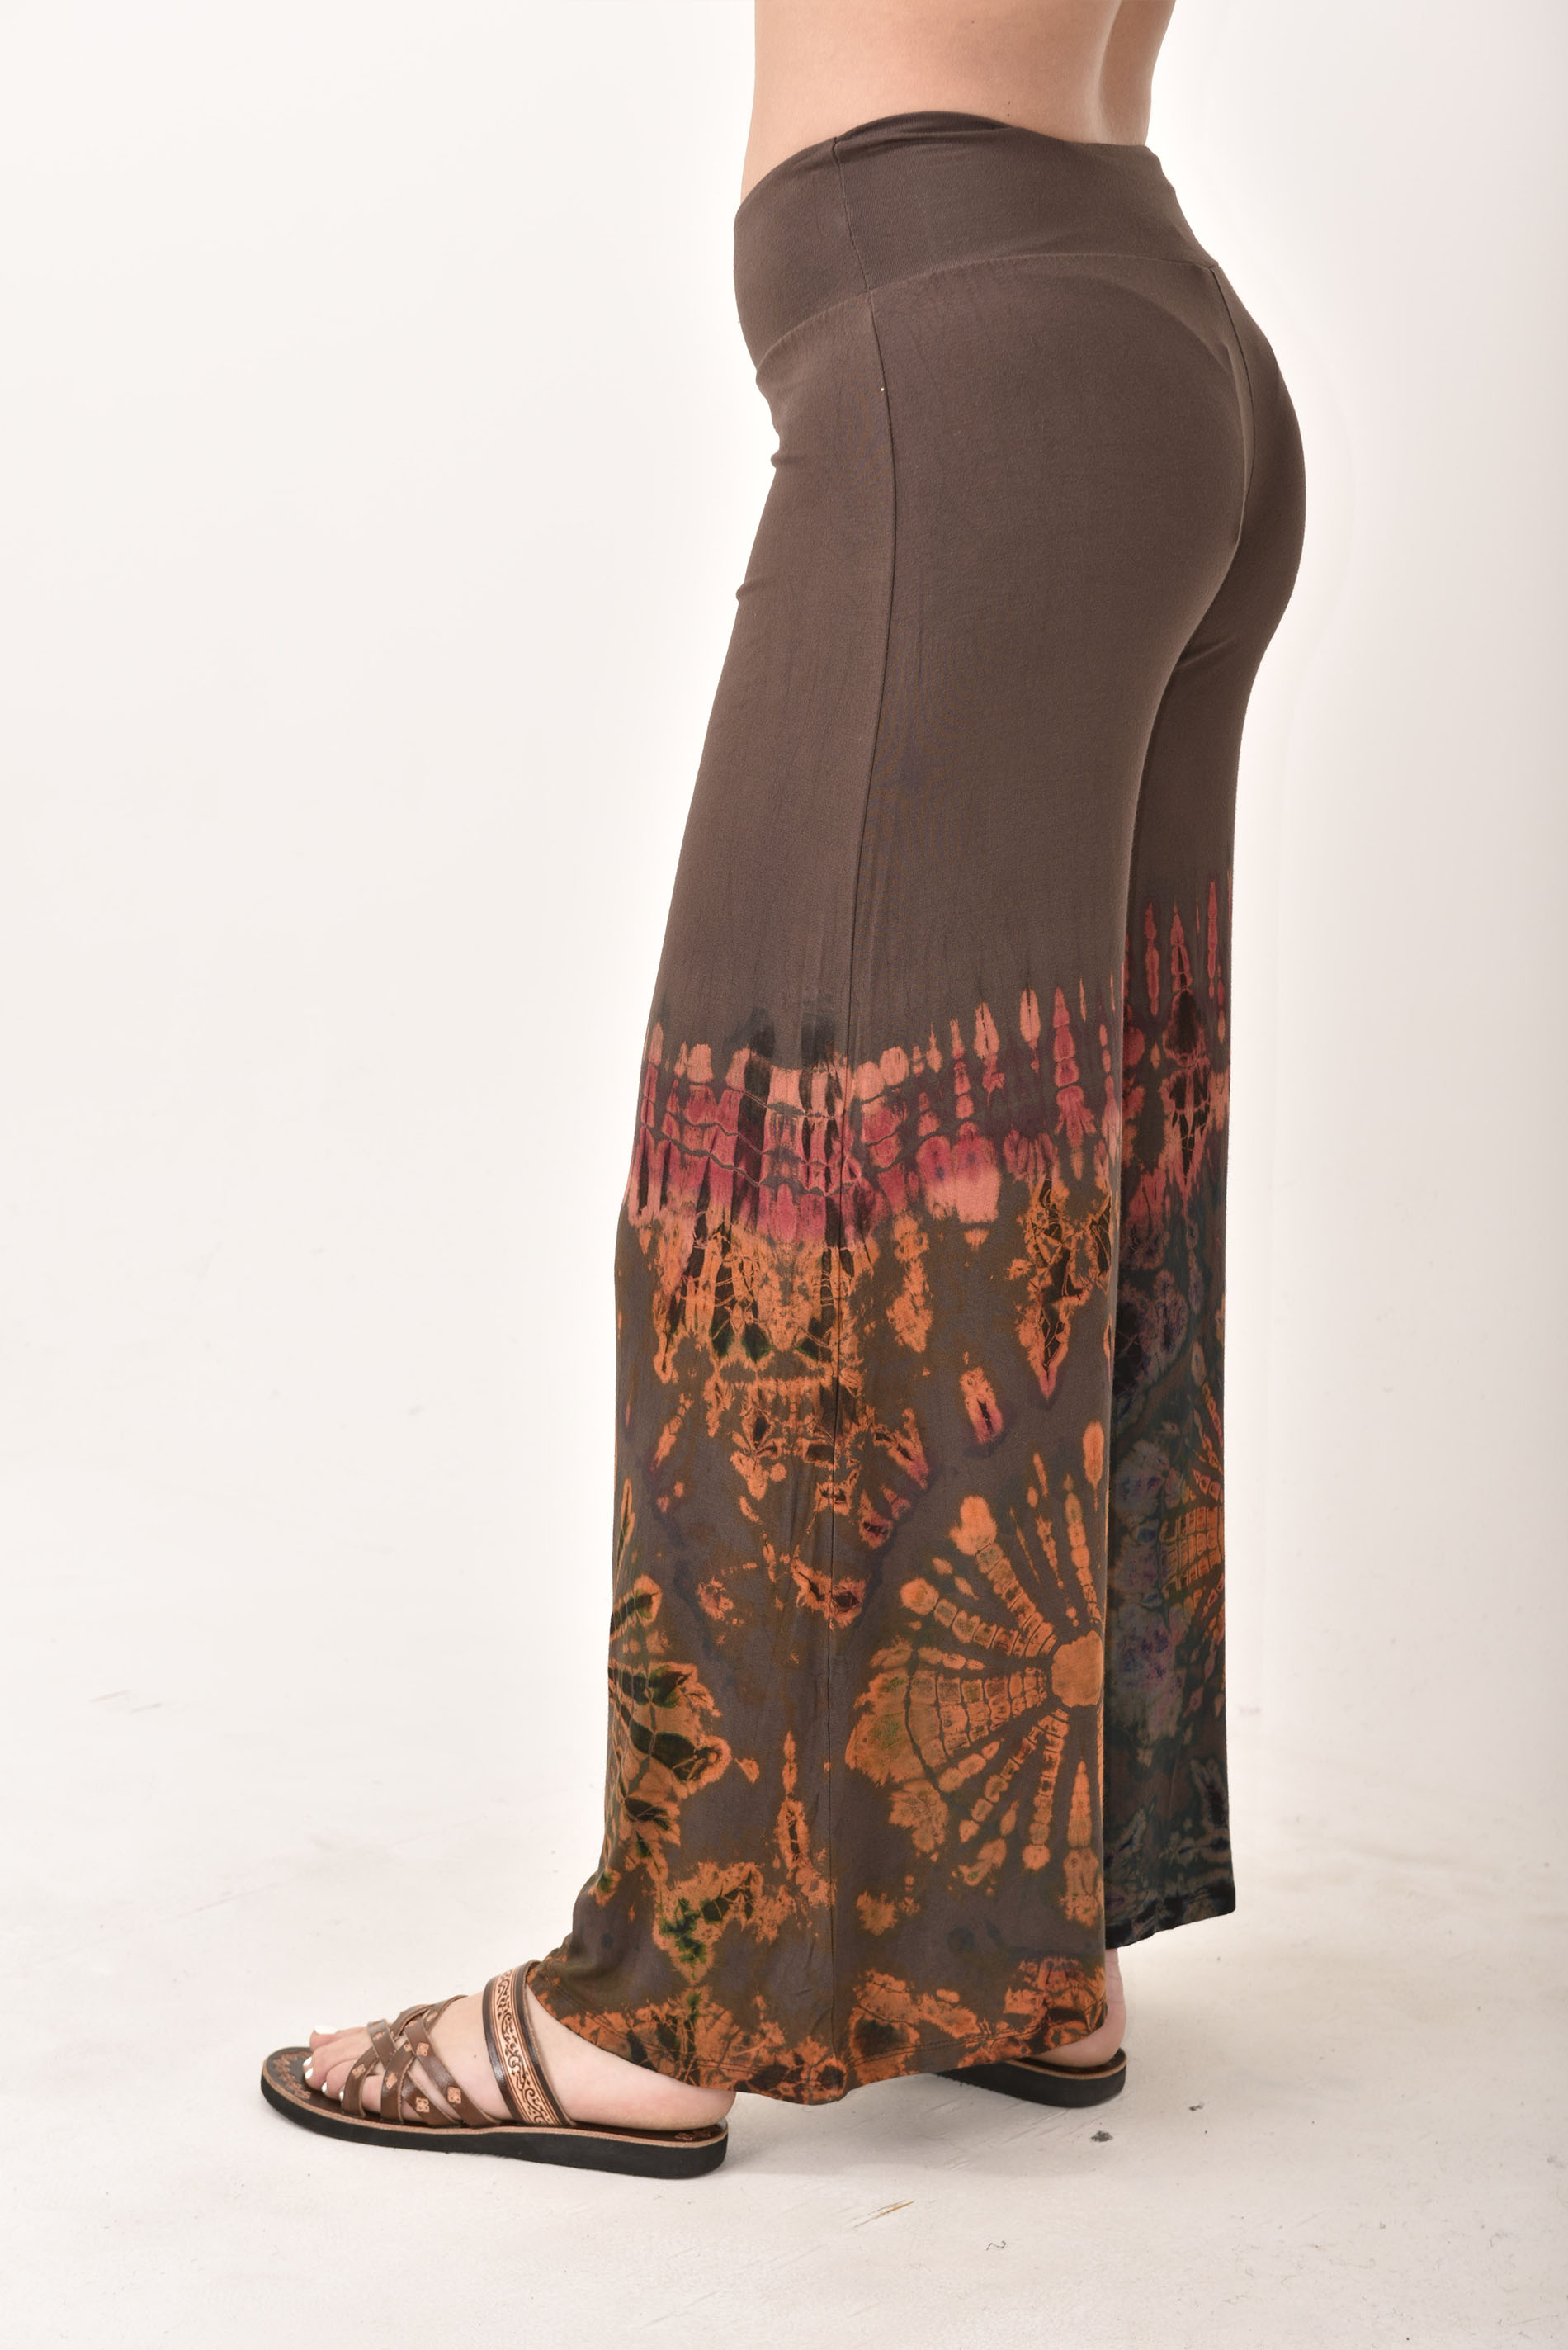 Wide Leg Pants Hand Painted Tie Dye, Brown Orange